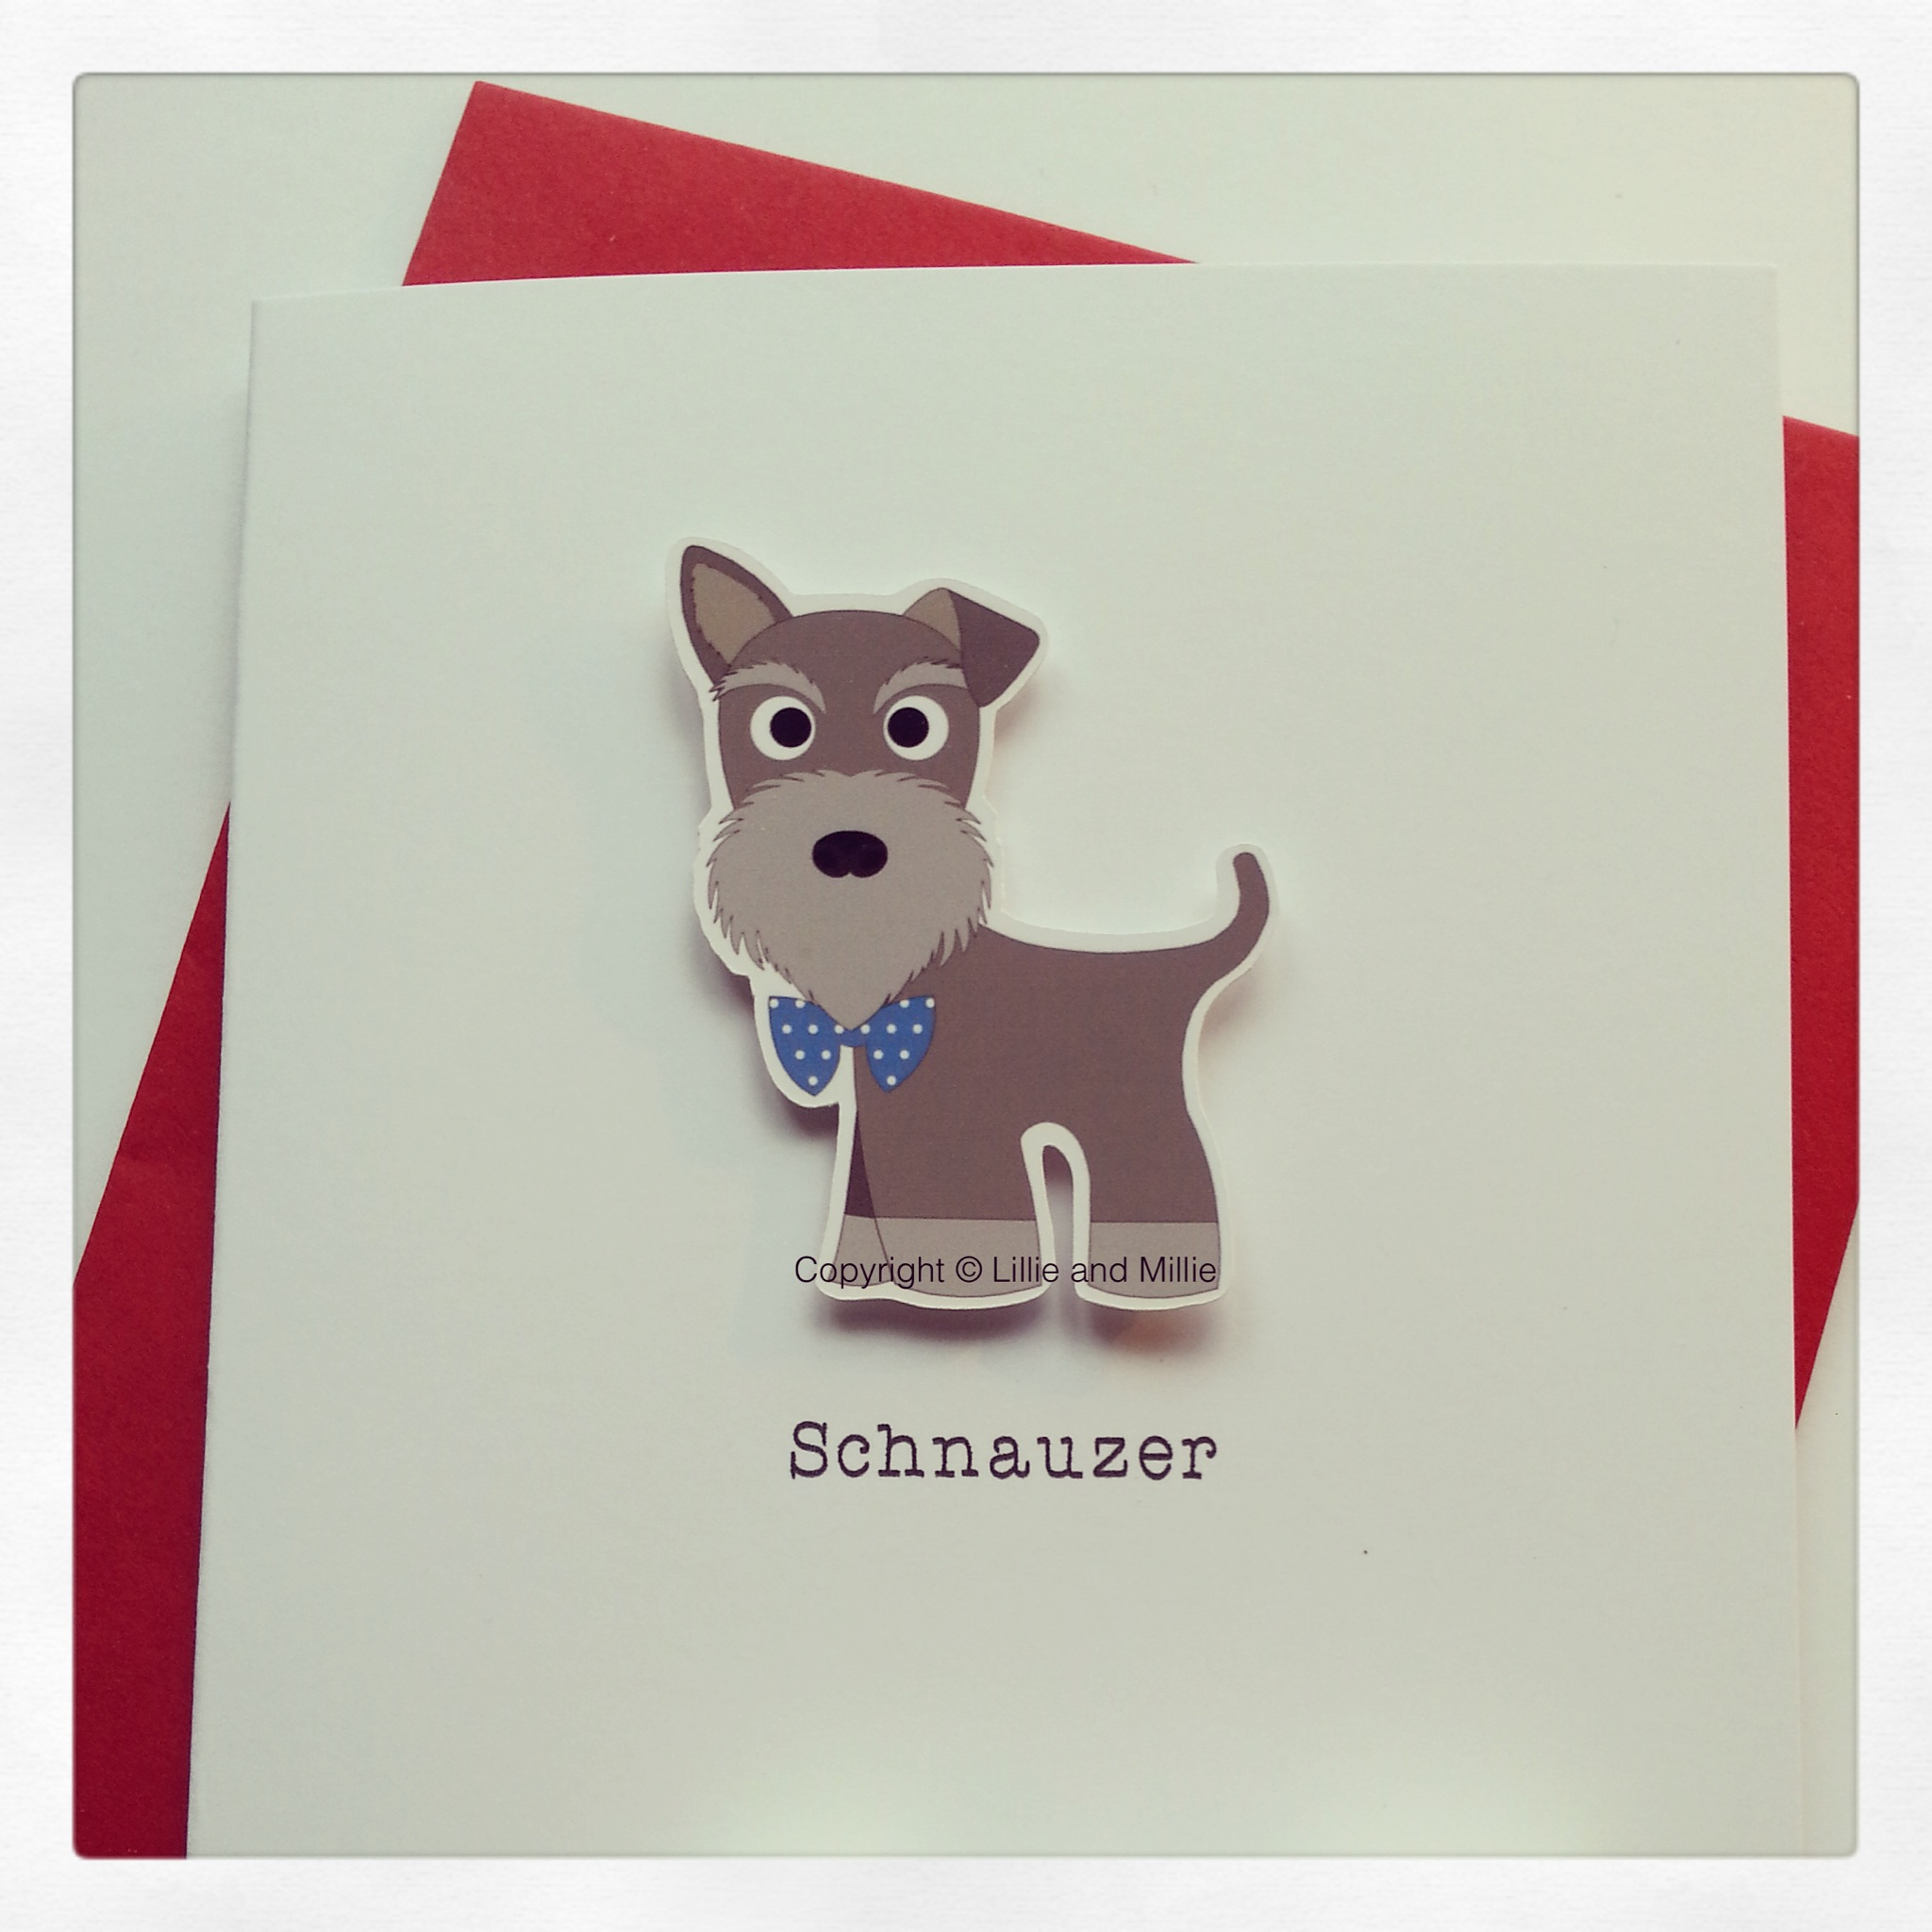 Cute and Cuddly Pepper and Salt Mixed Ears Card